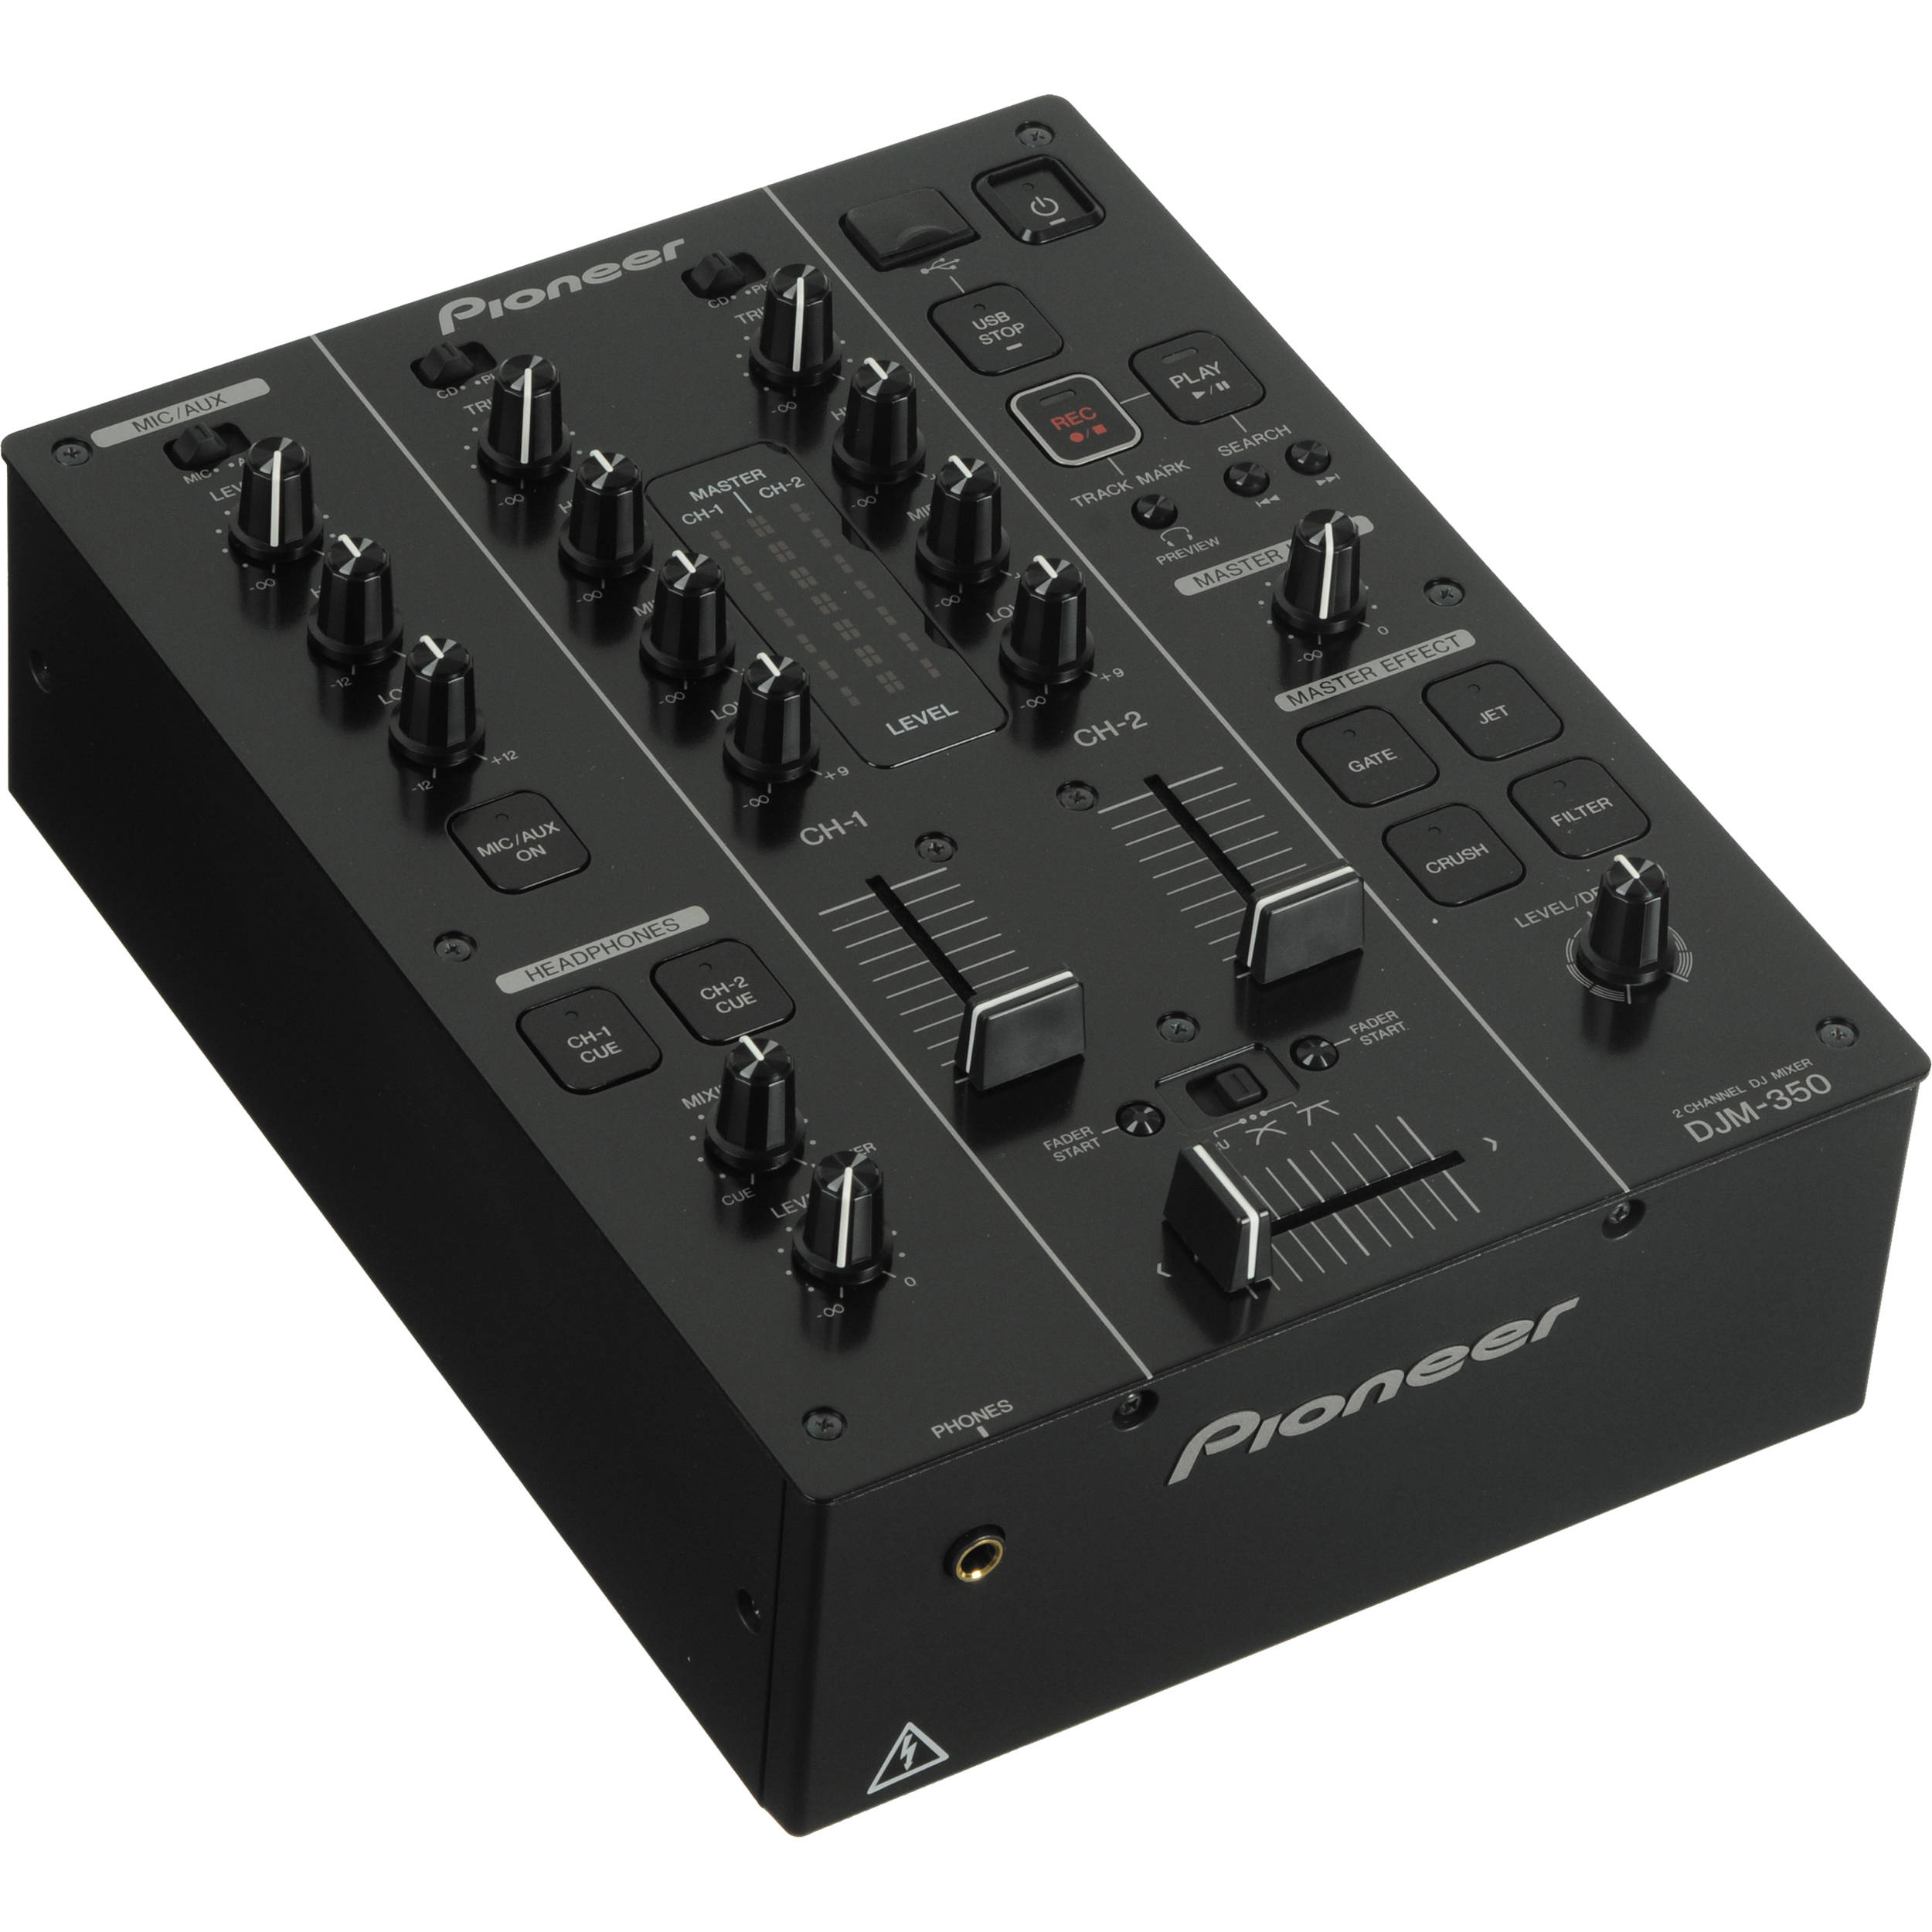 DDJRR also Terrace March Flyer likewise First Fret Violin Fingerboard Marker Assorted Sizes Ffingermark together with Akai Mpd218 Midi Usb 48 Pad Dj Producer Beatpad Controller further Item 5695 Alpine IVA D310. on dj lighting effects